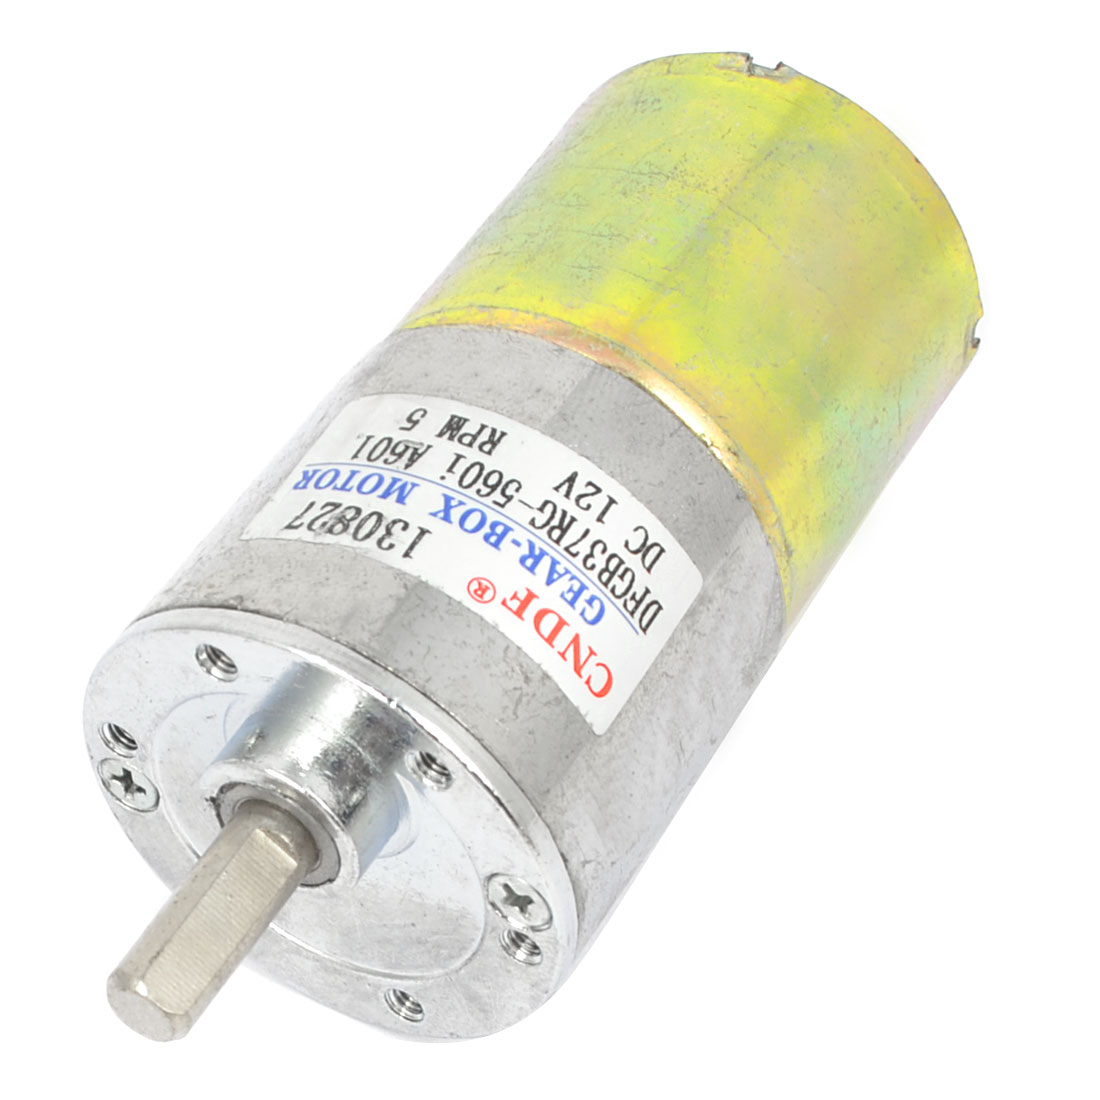 Electric Replacement DC 12V 5RPM Rotation Output Speed Generator Motor